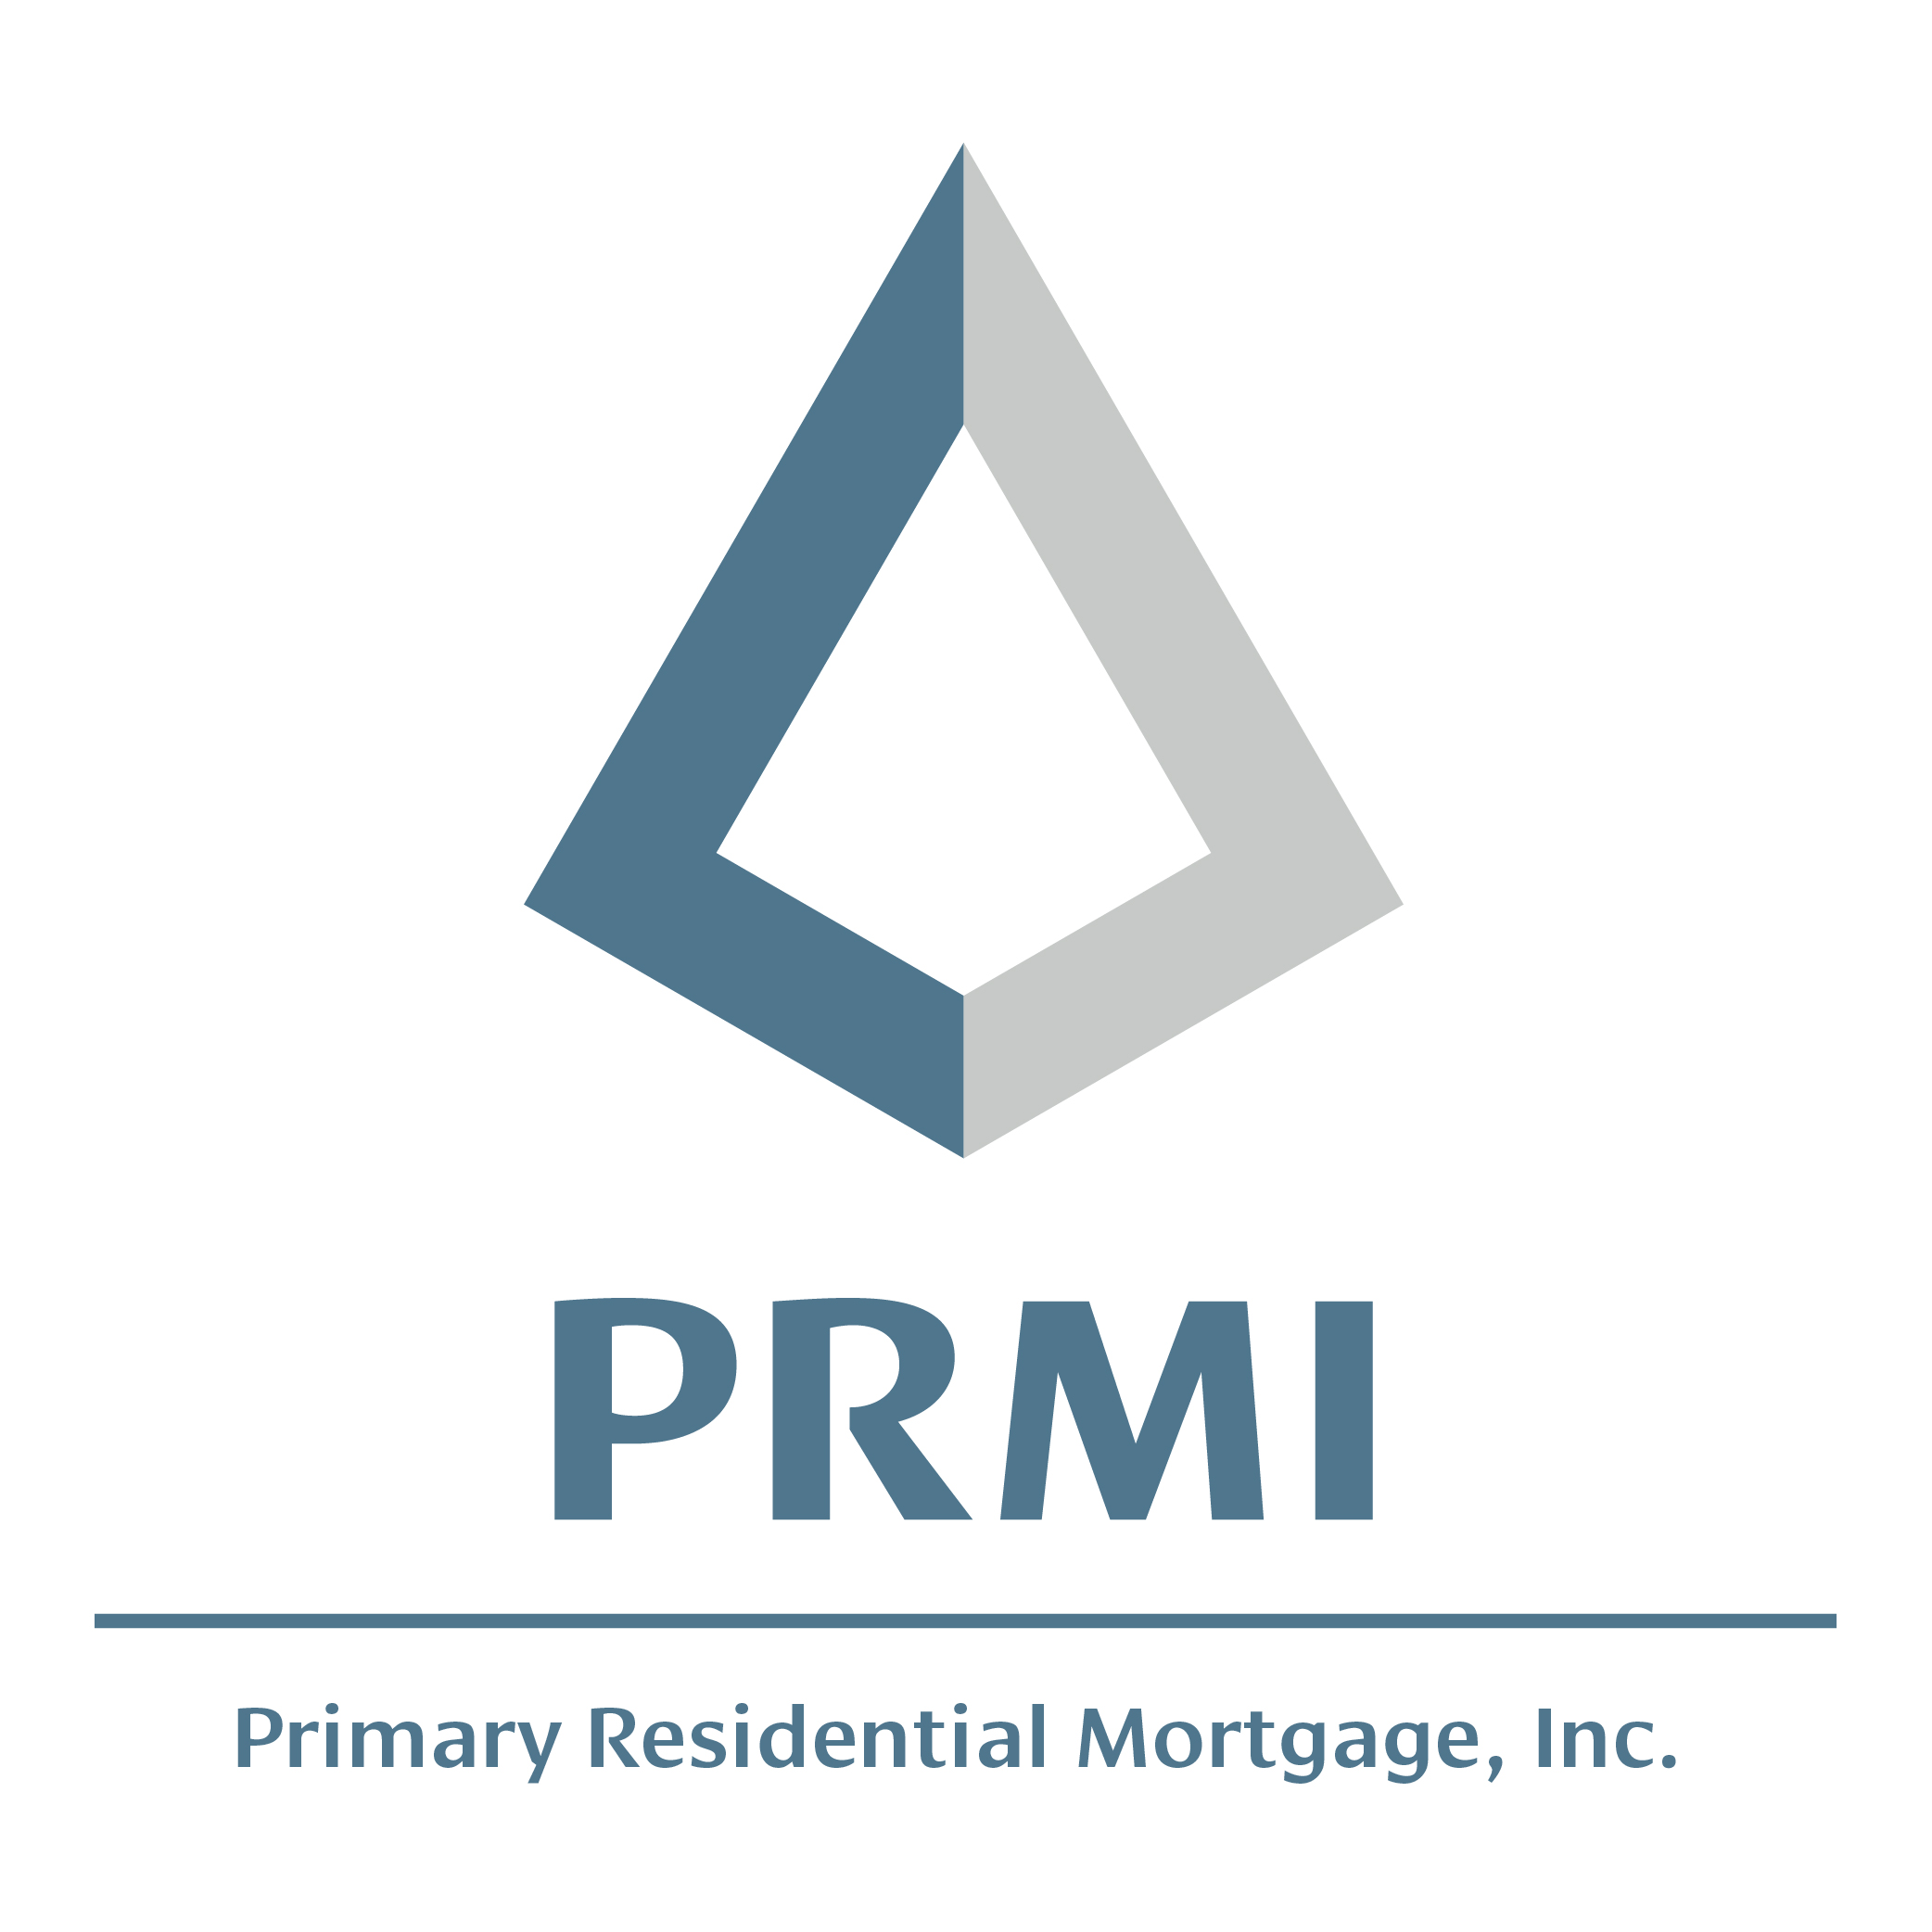 Primary Residential Mortgage, Inc. - Avon, OH 44011 - (440)934-1244 | ShowMeLocal.com